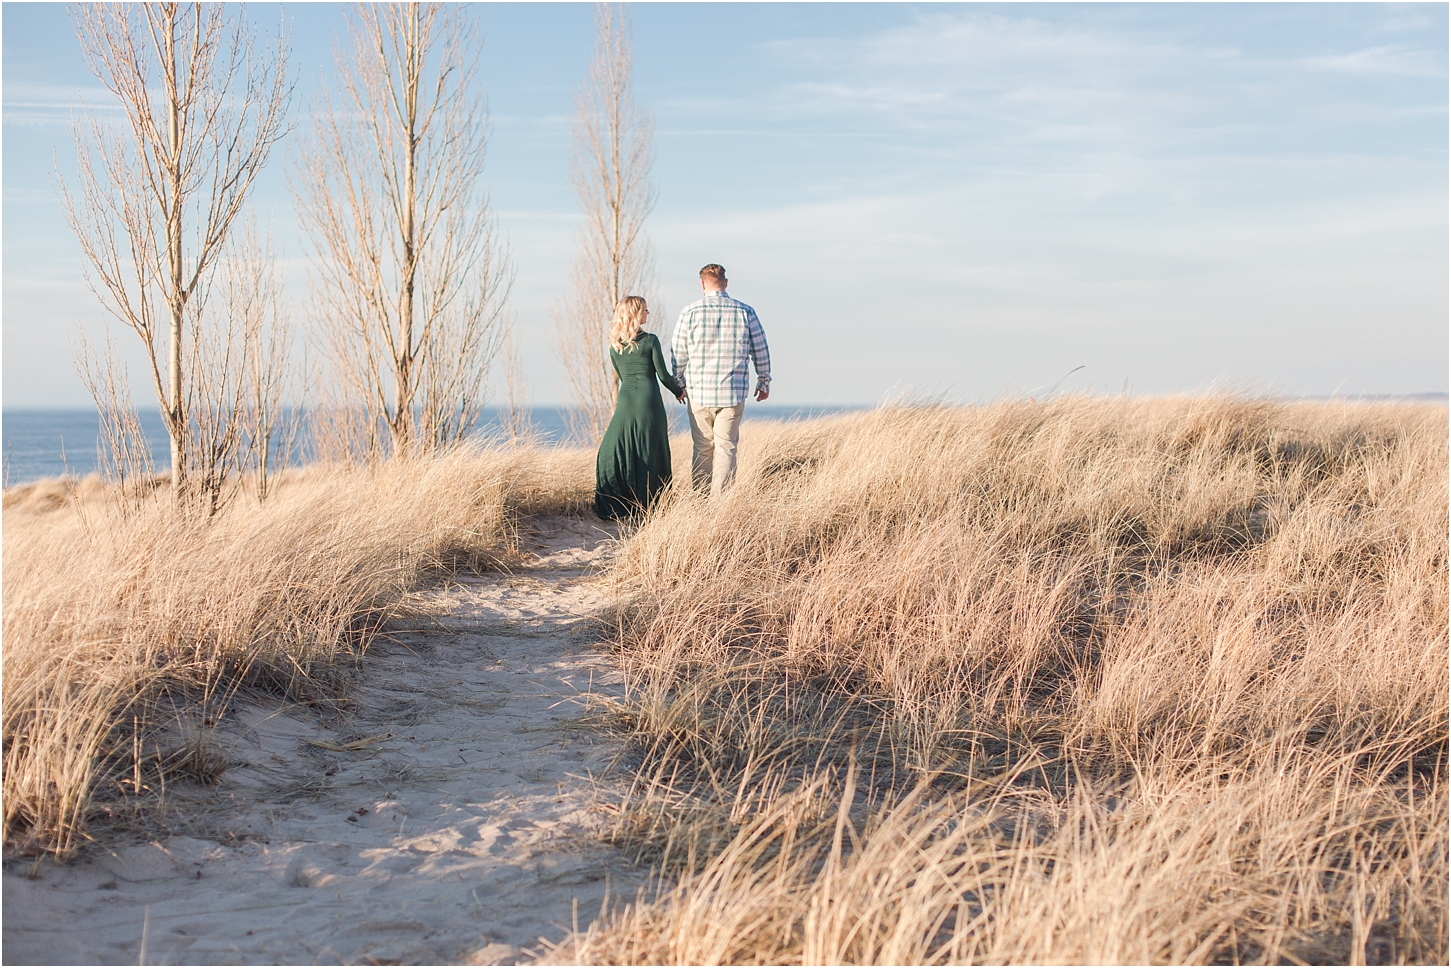 romantic-sunset-beach-engagement-photos-at-silver-beach-in-saint-joseph-mi-by-courtney-carolyn-photography_0004.jpg